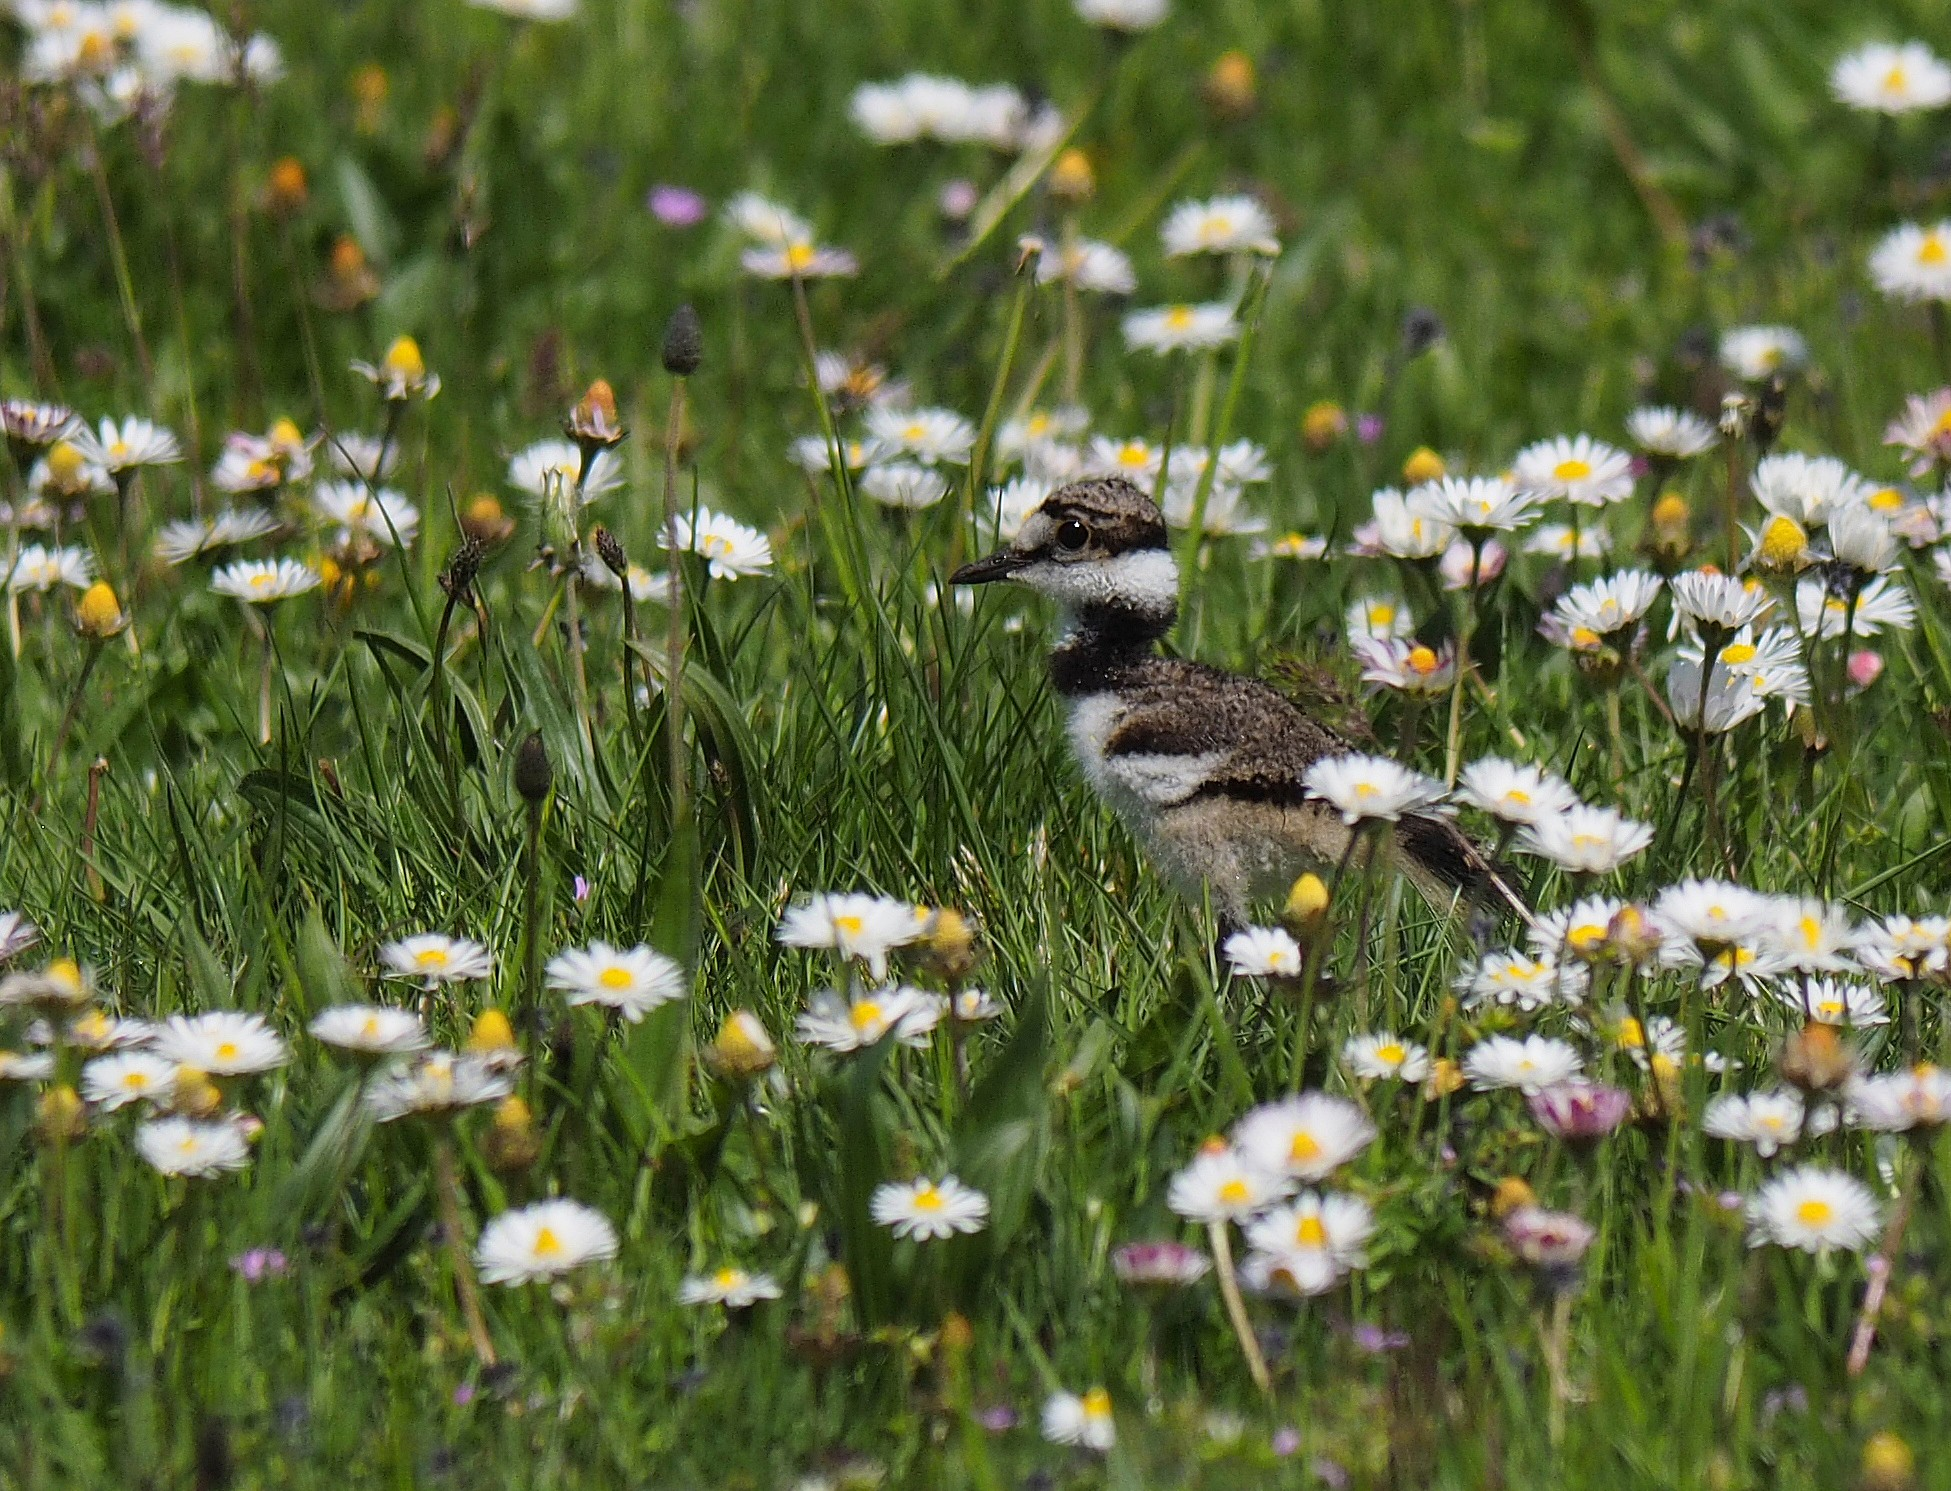 killdeer chick amongst the daisies